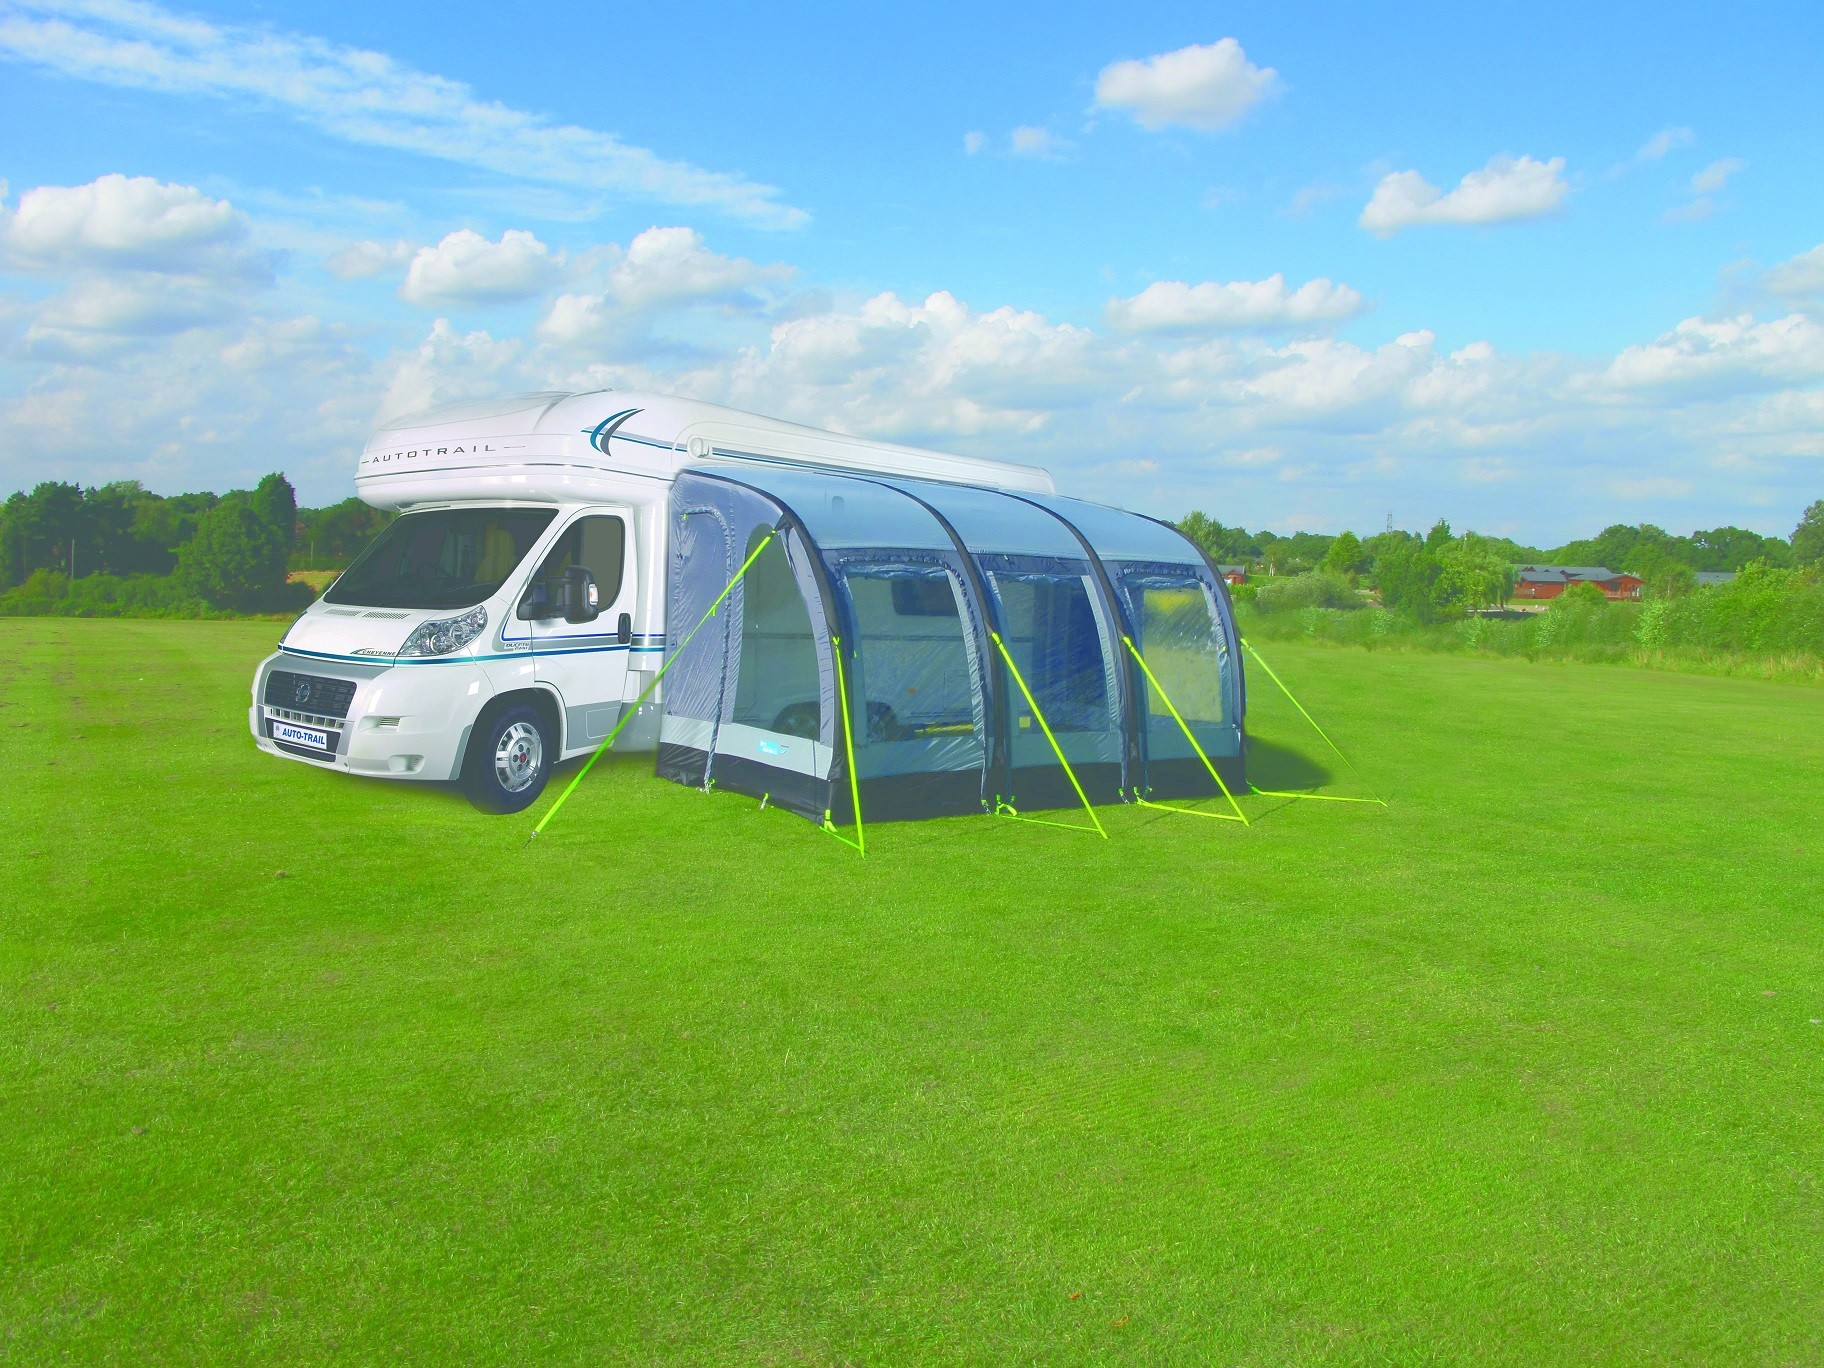 Kampa Motor Rally Air 390 Xl Motorhome Awning By Kampa For